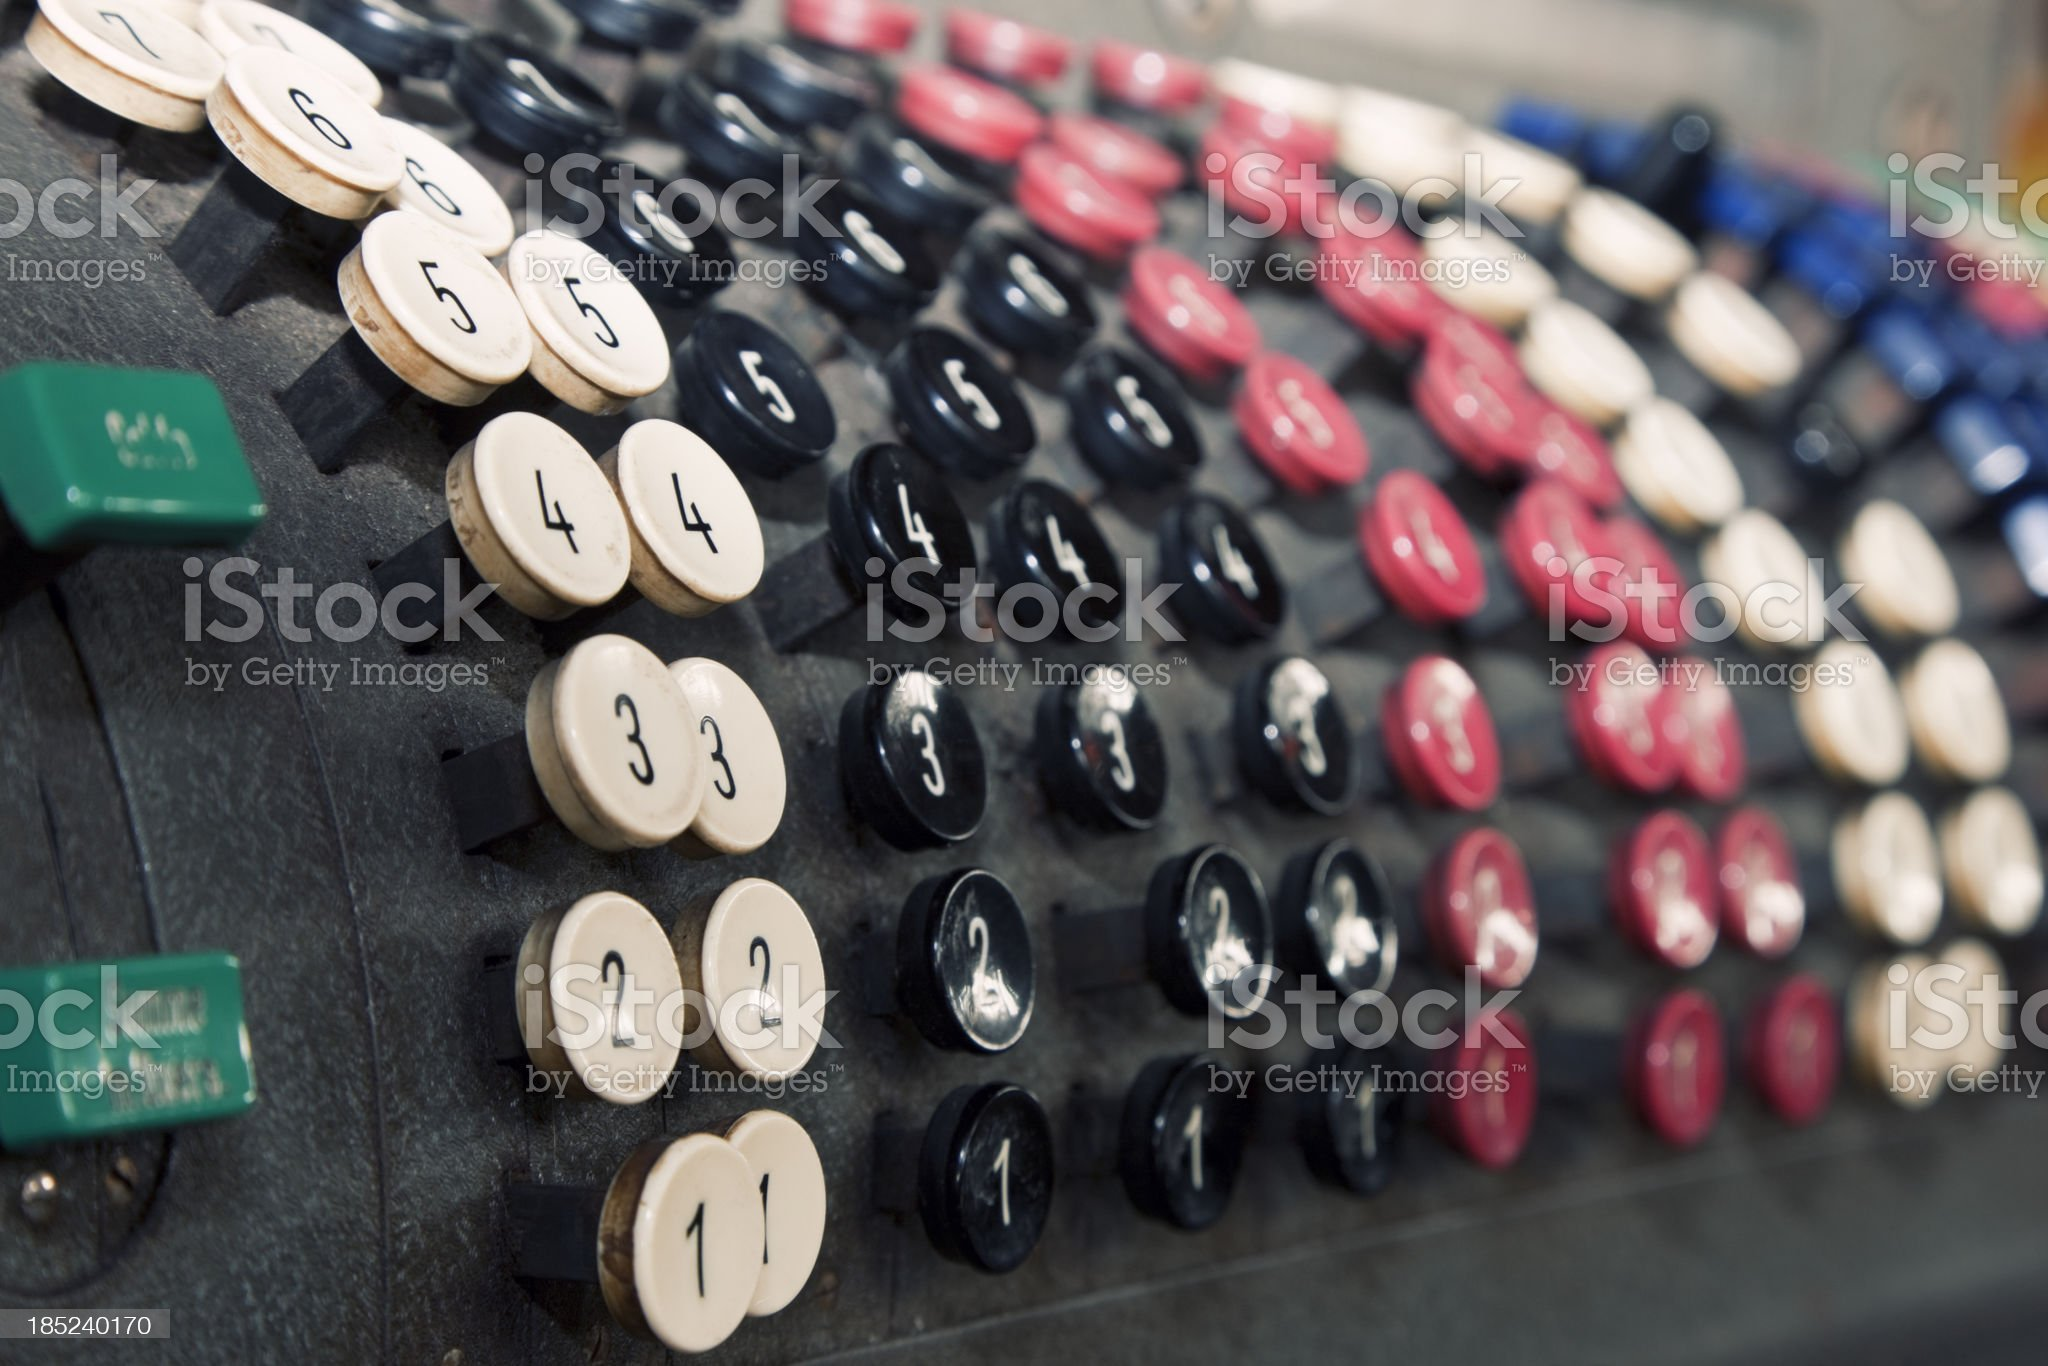 Vintage Calculating Machine Close-up royalty-free stock photo